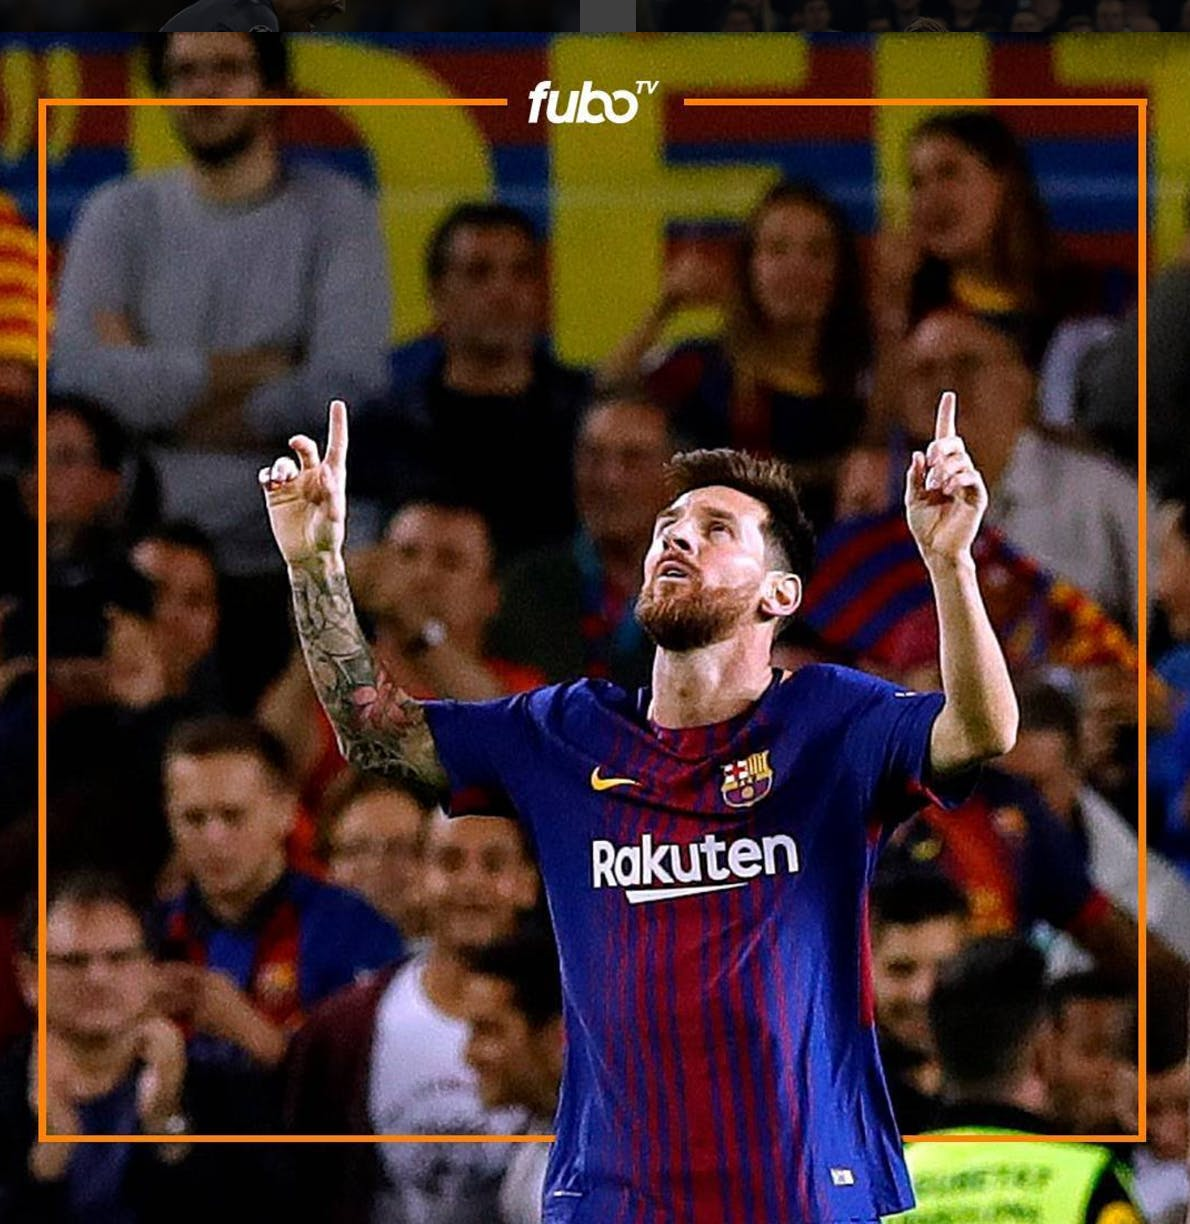 fubotv local channels cost